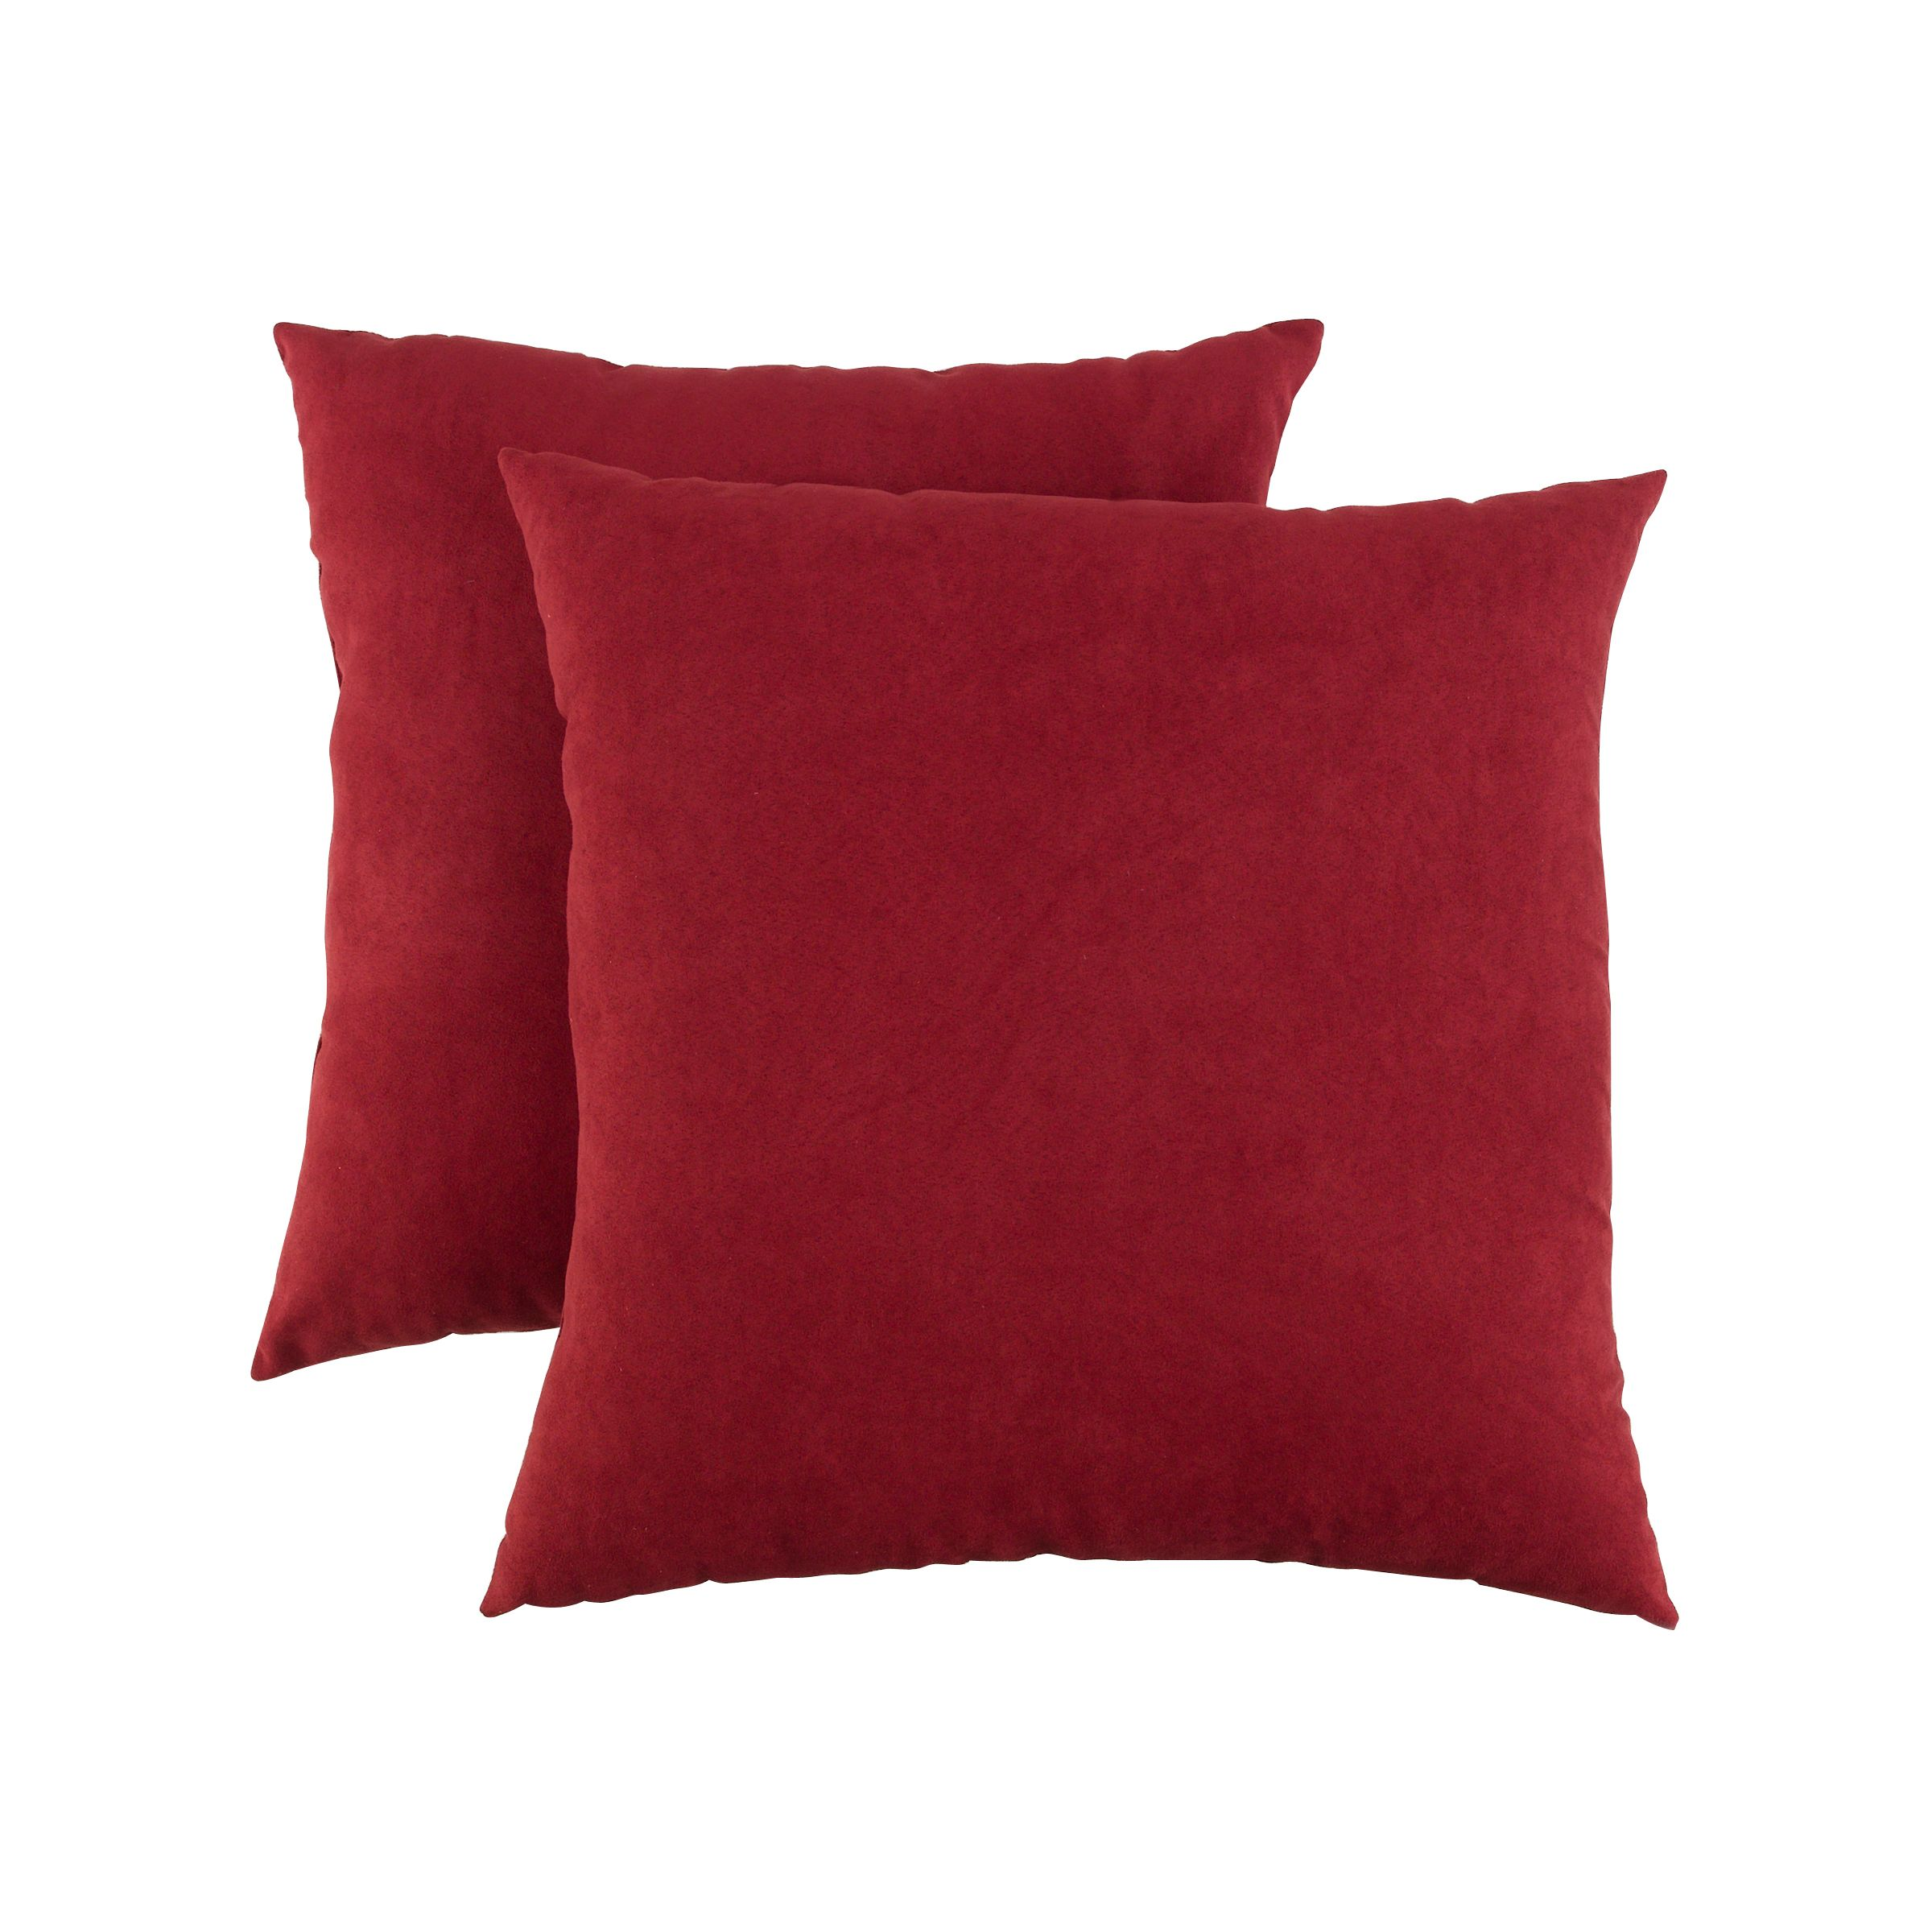 Decorative Pillows Kmart : Essential Home Faux Suede 2-pack Decorative Pillows- Red